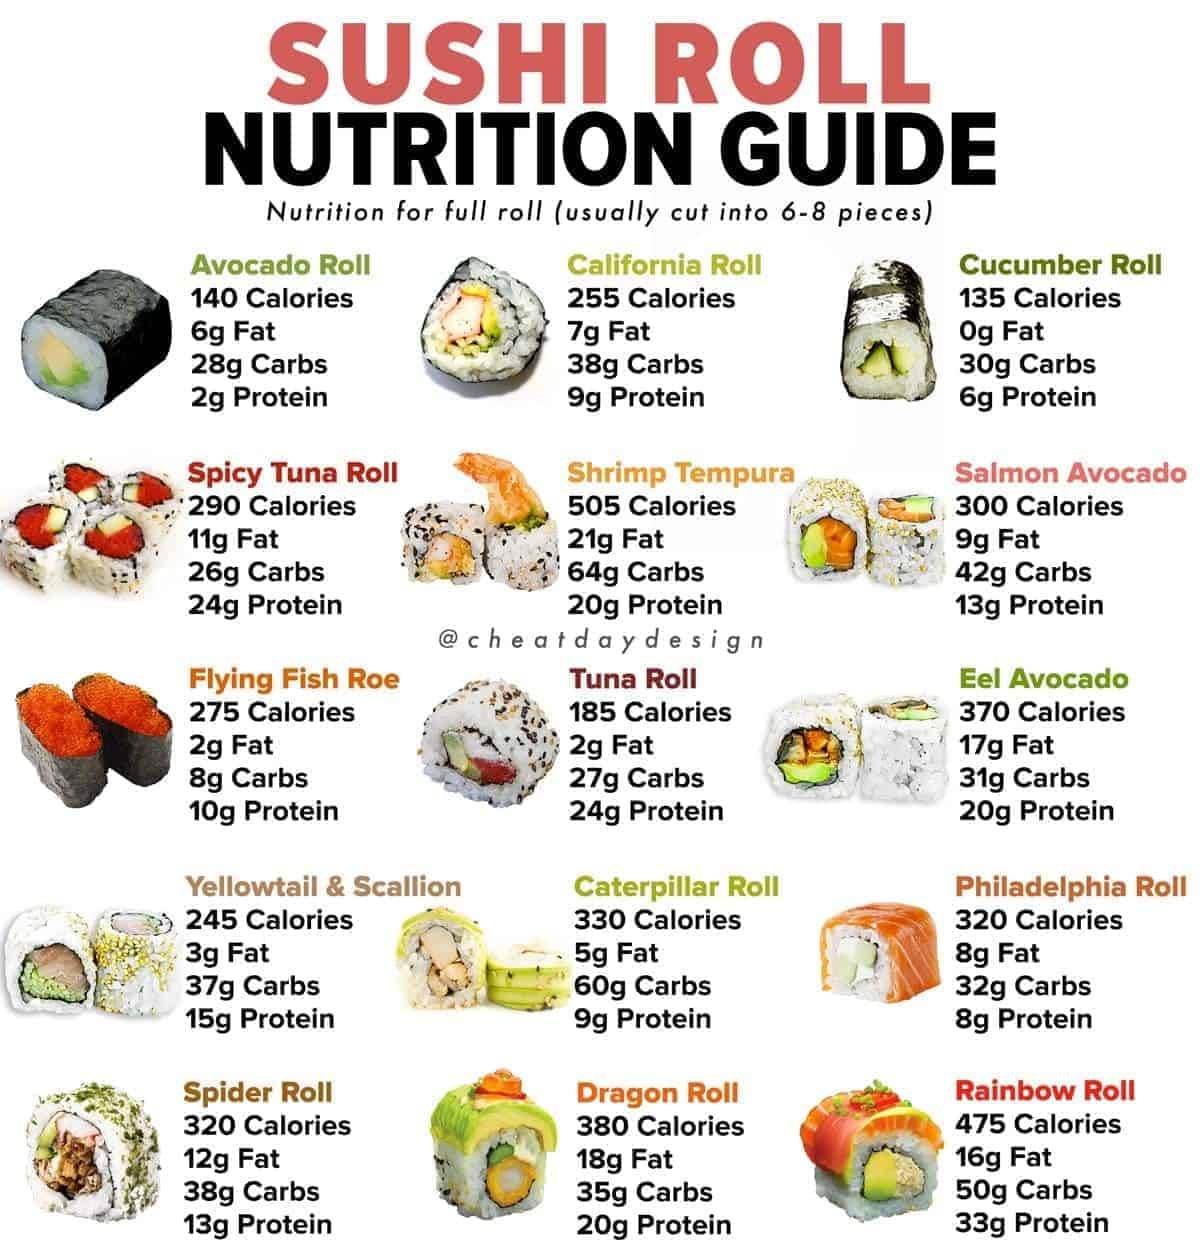 Sushi Nutrition Guide